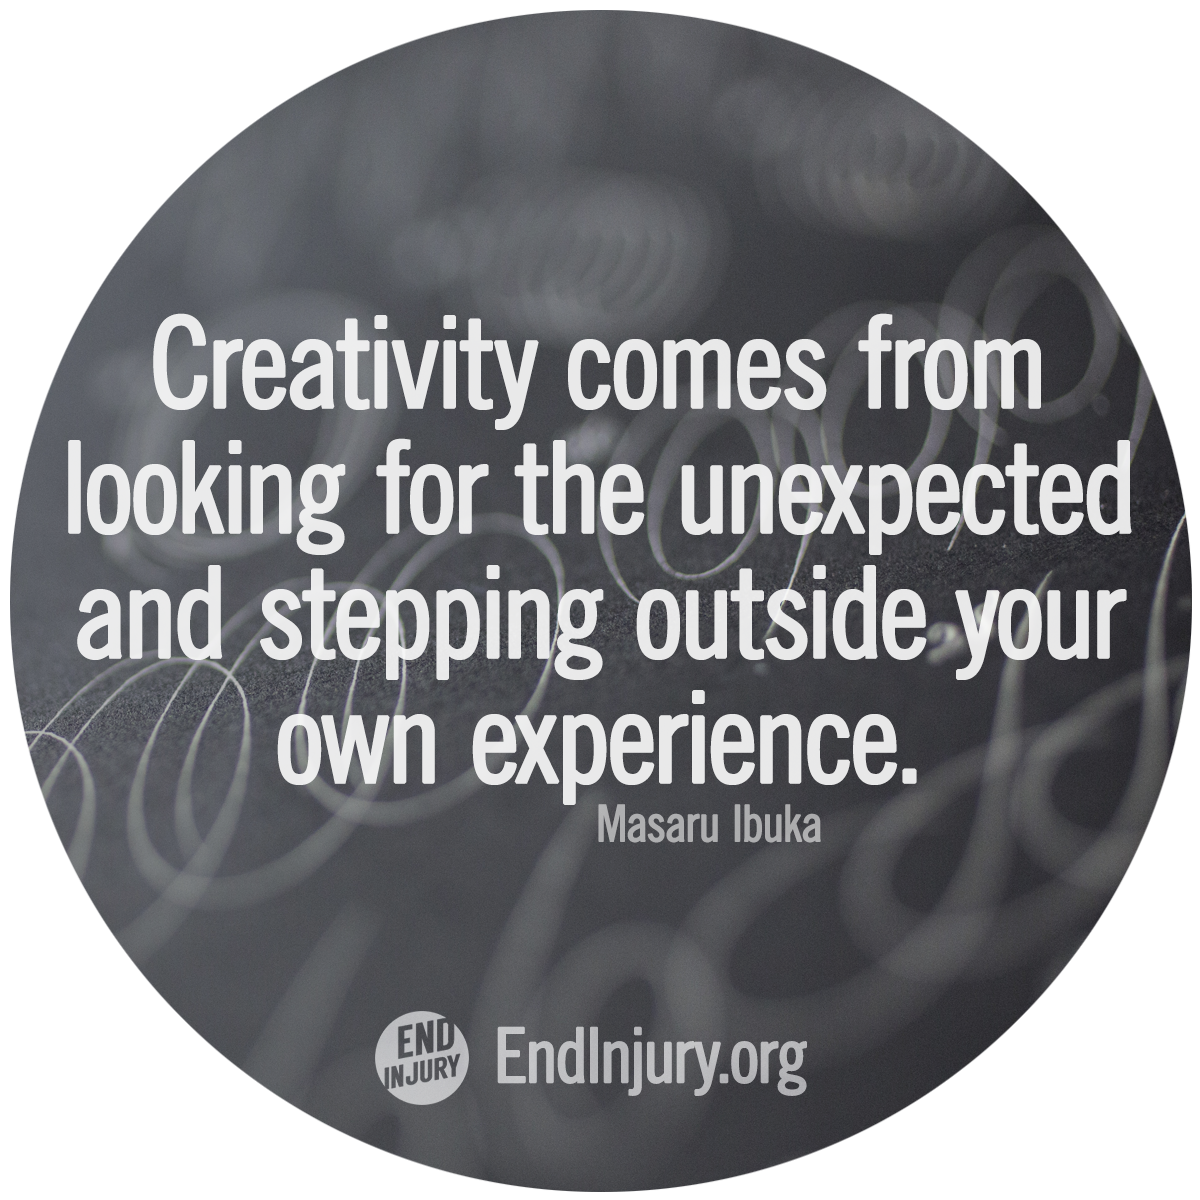 creativity-unexpected-ibuka-quote-photo.png